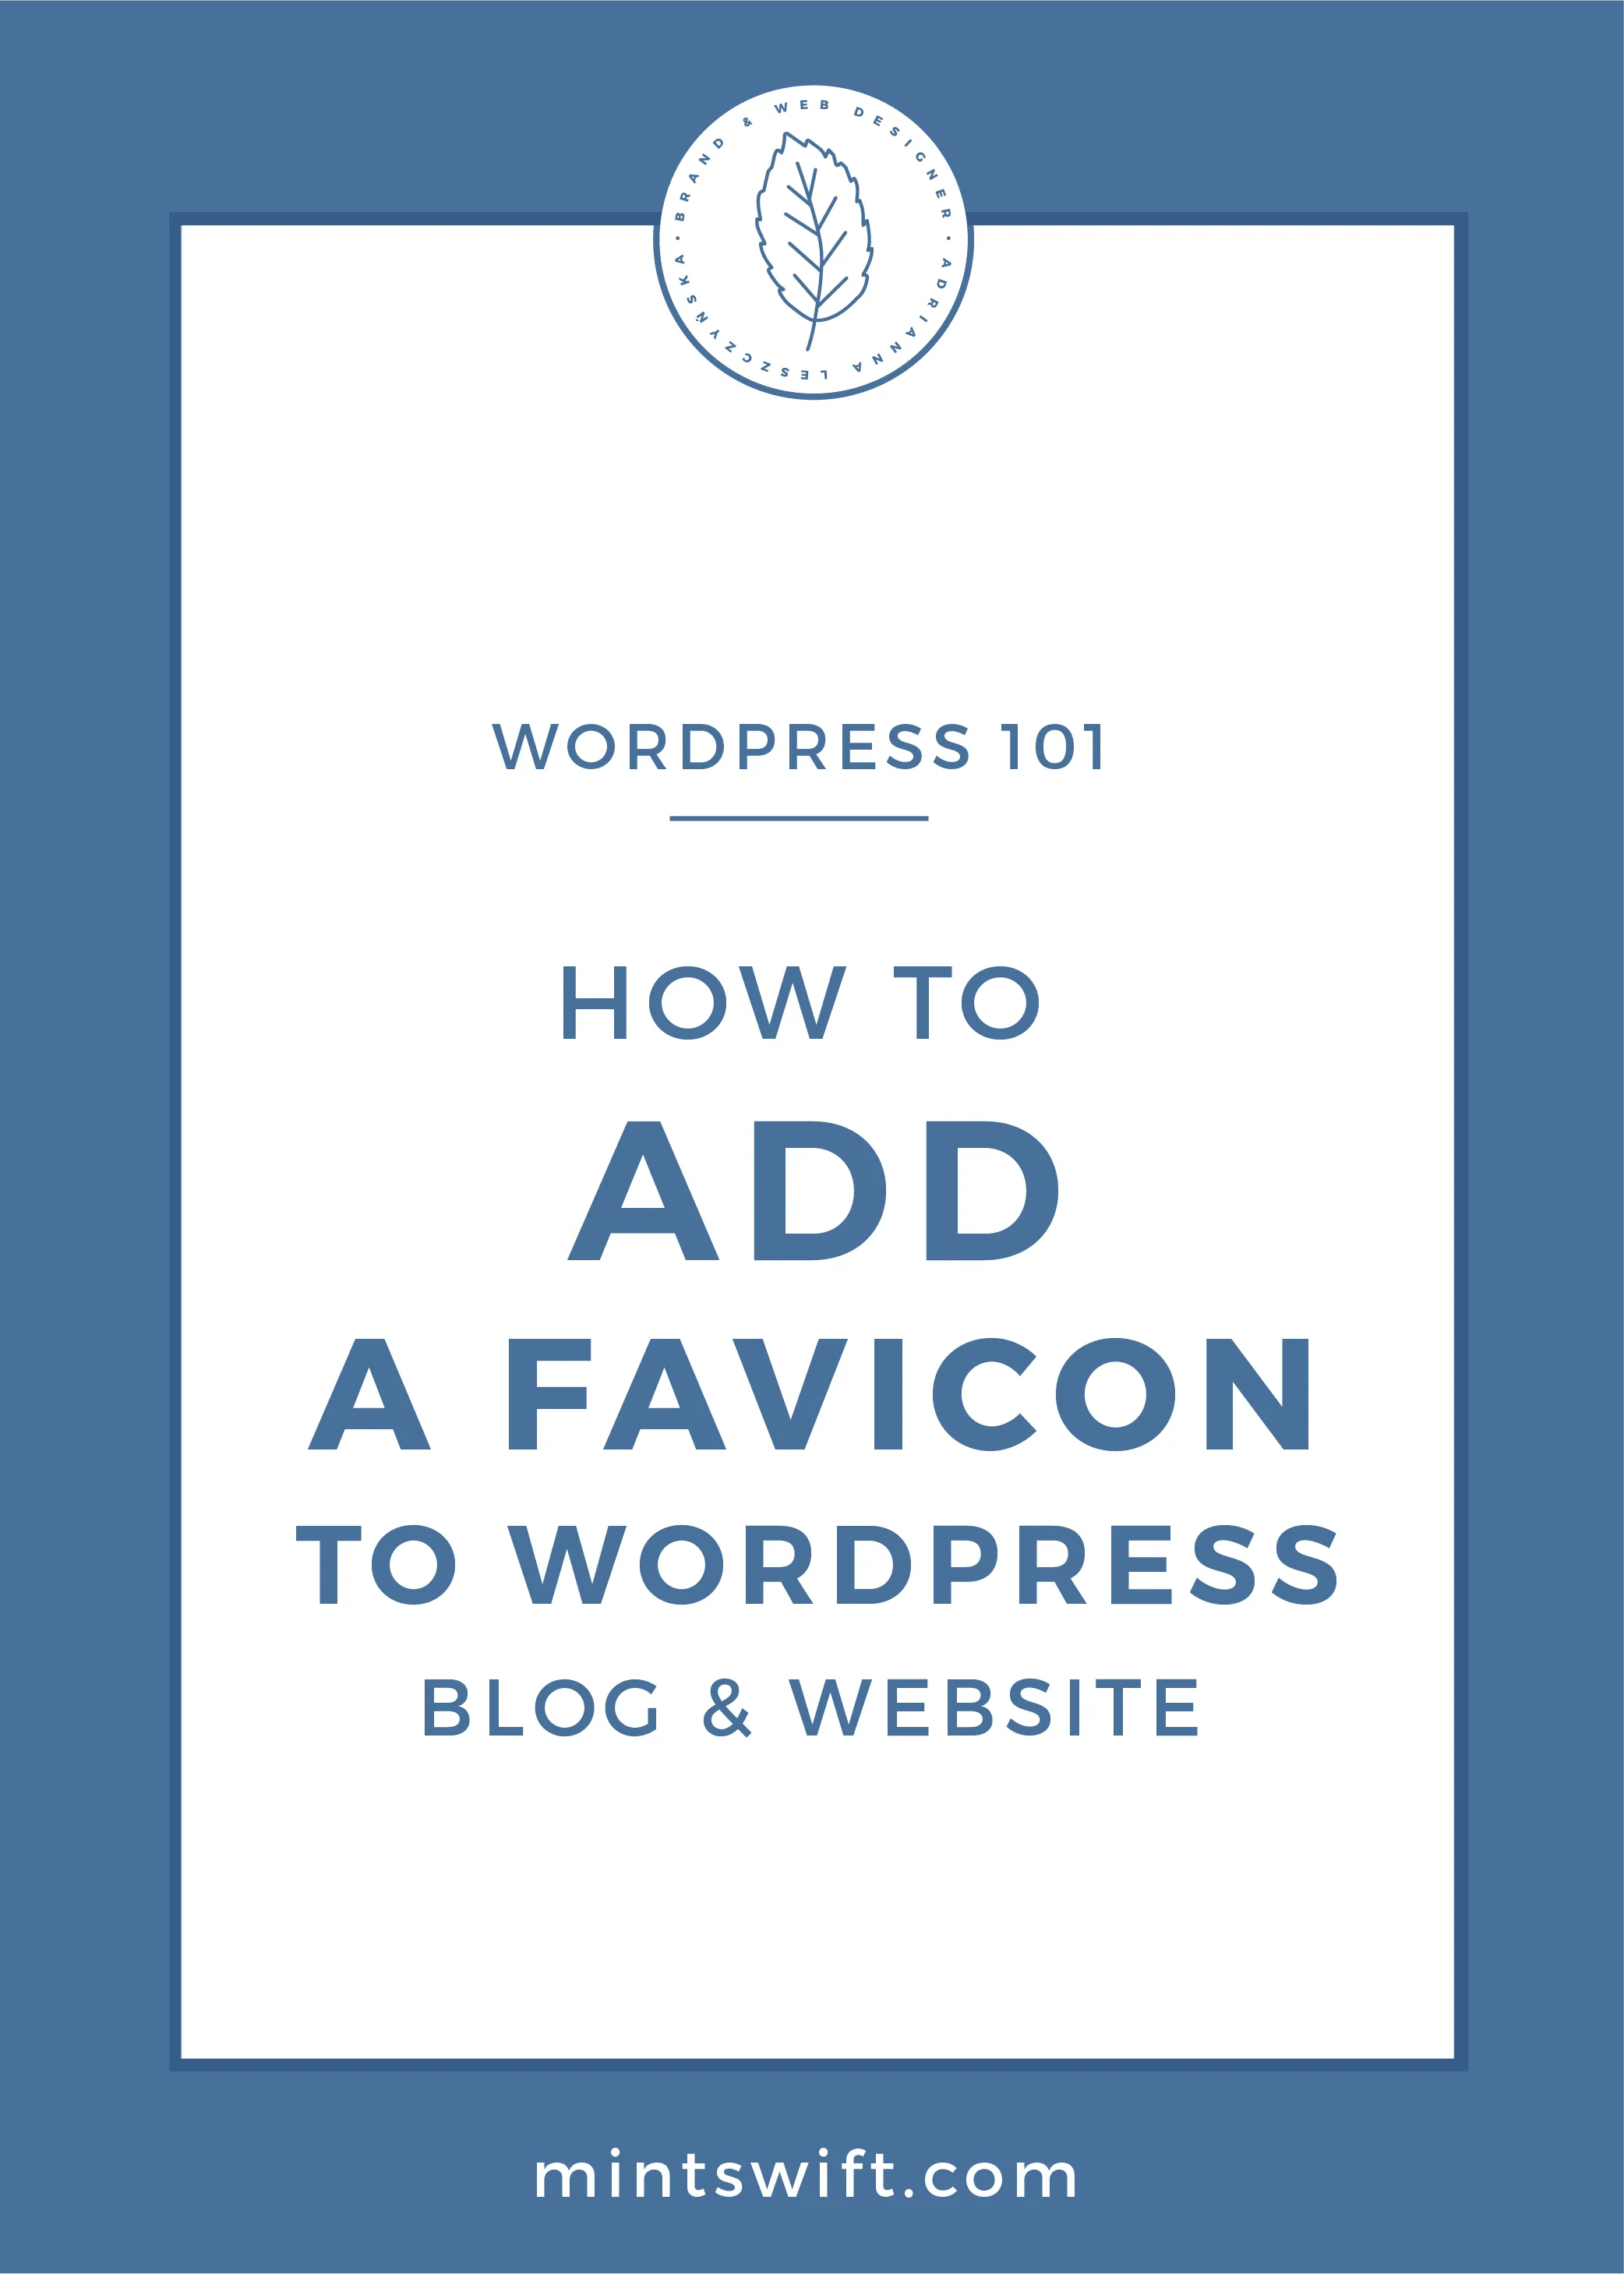 How to Add a Favicon to WordPress Blog & Website by MintSwift